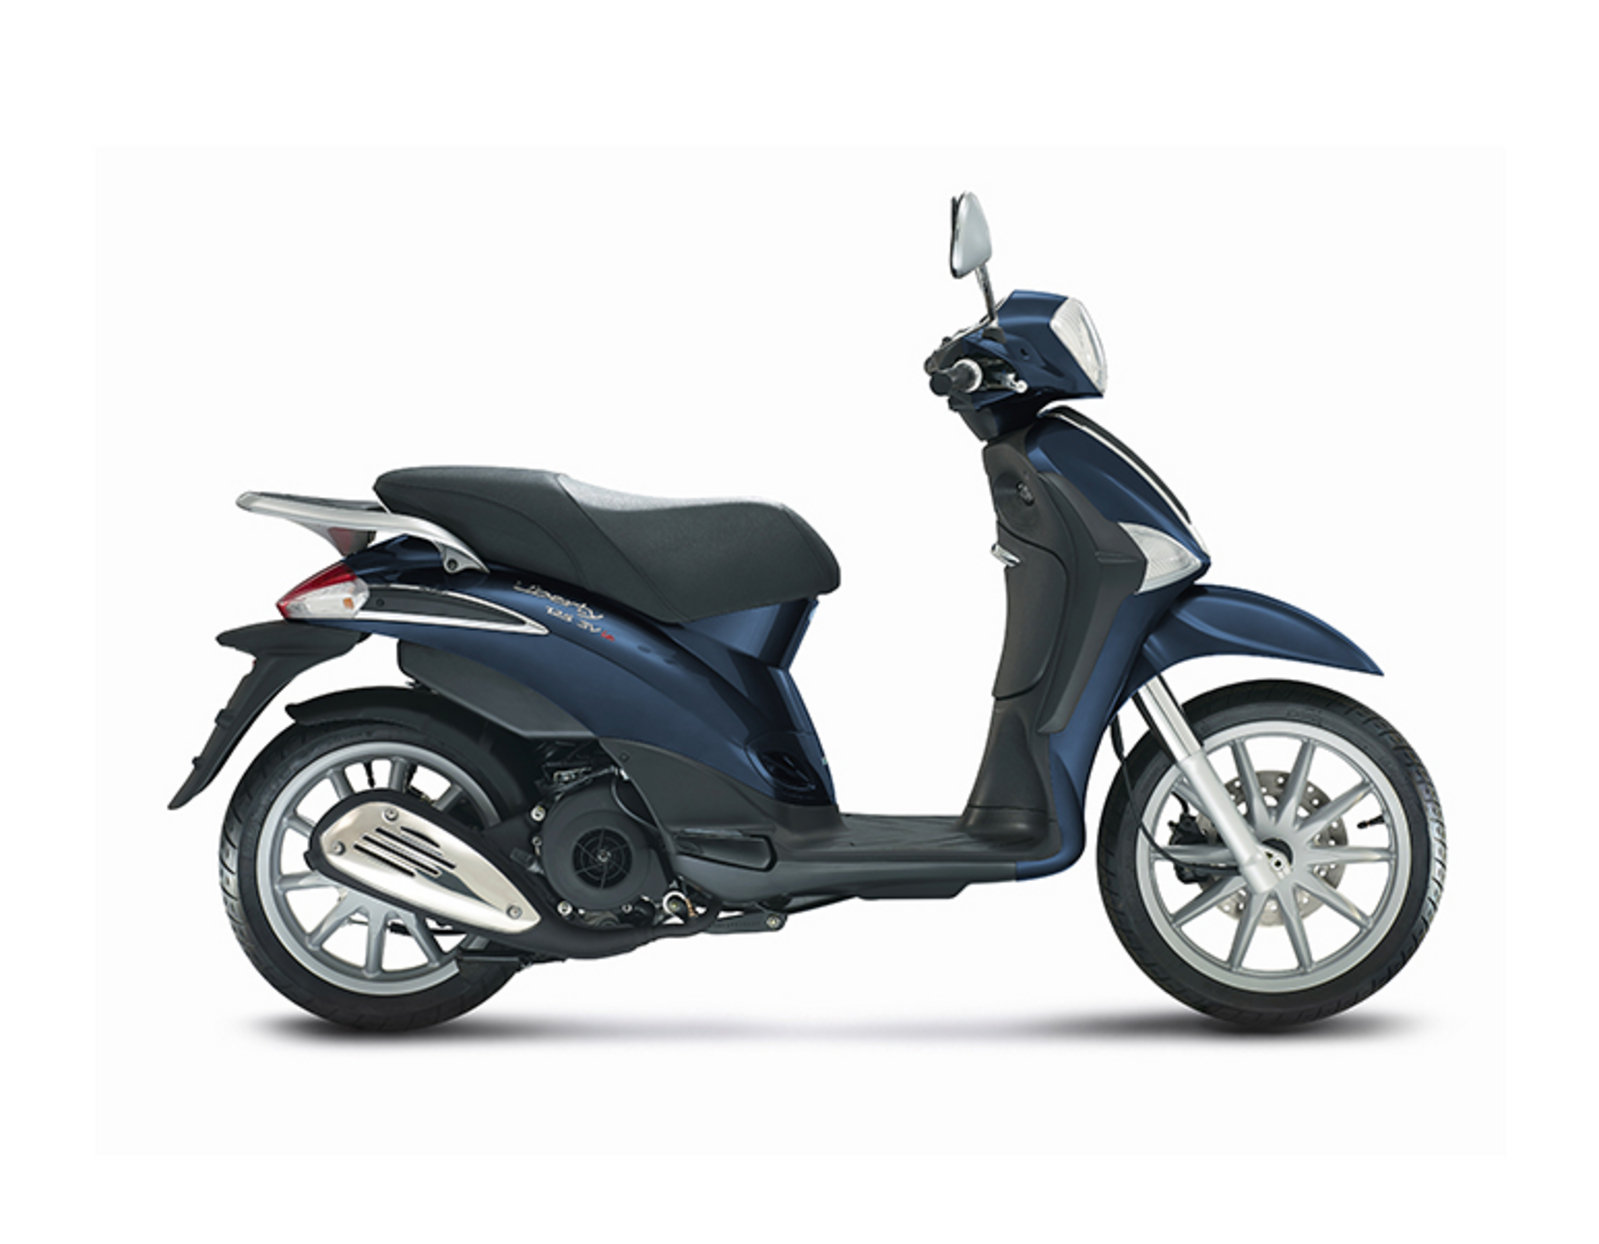 2014 piaggio liberty 125 3v review top speed. Black Bedroom Furniture Sets. Home Design Ideas